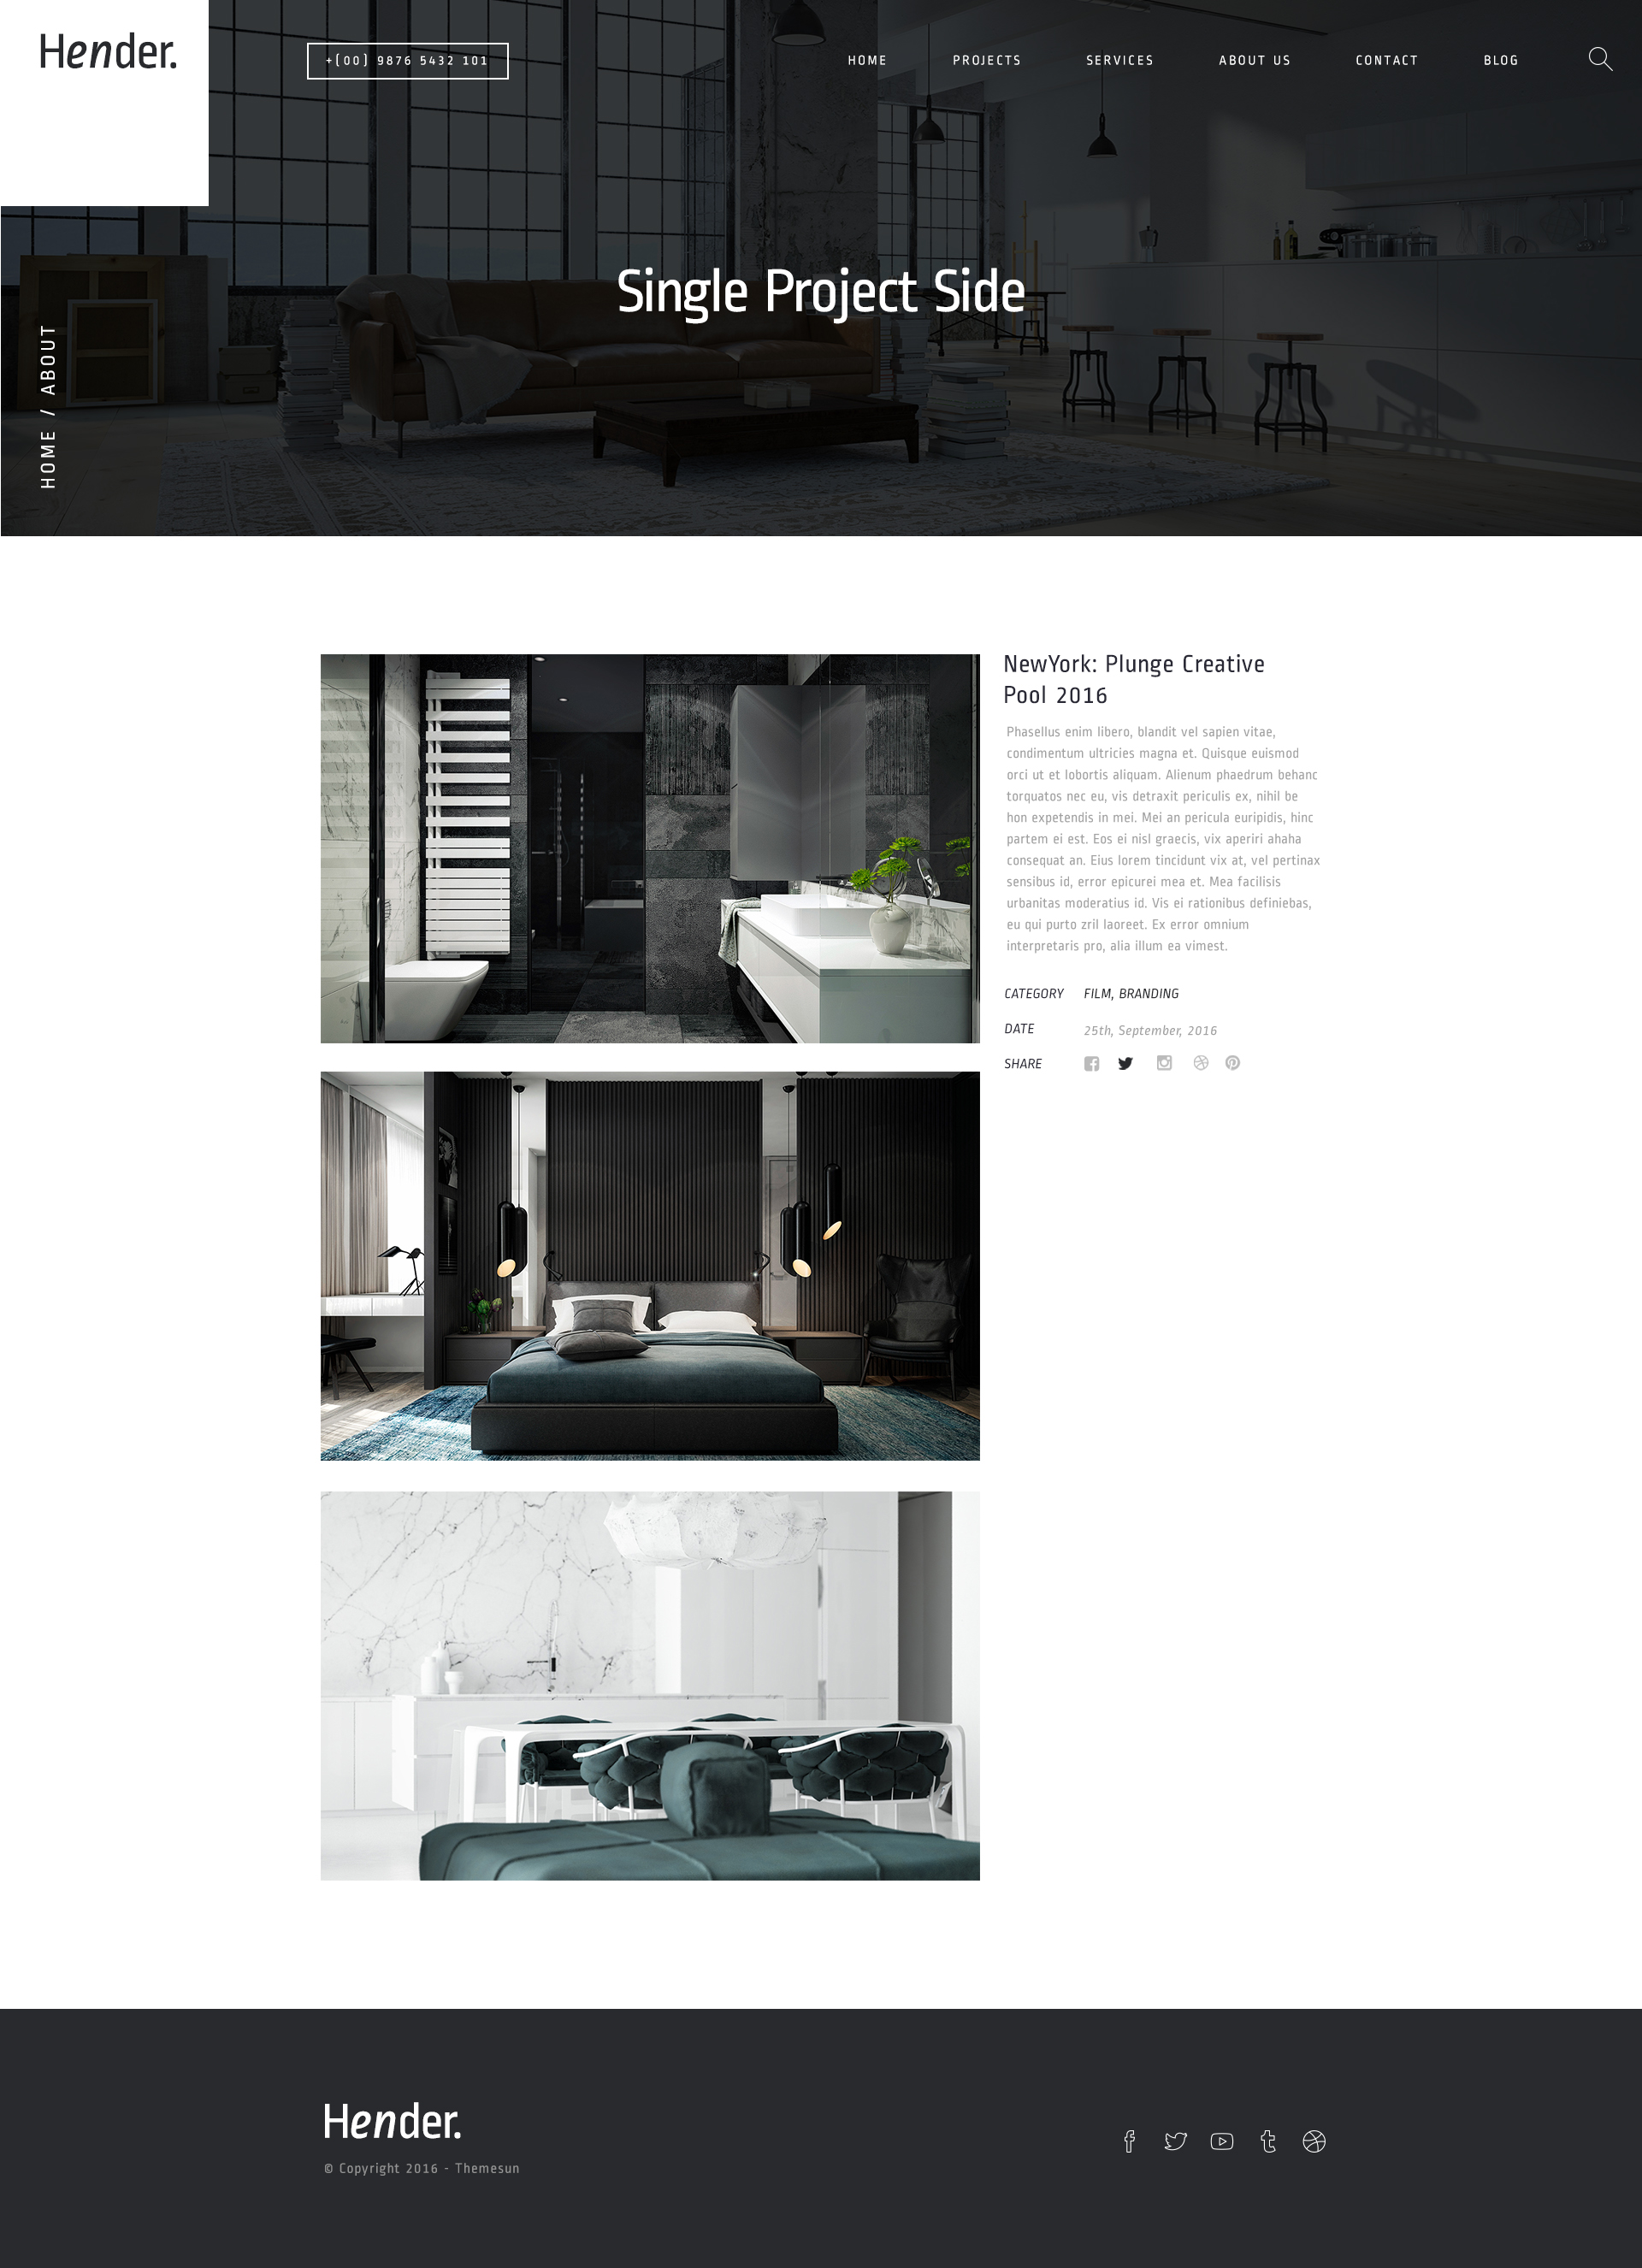 Hender architecture and interior design agency psd for Interior design agency